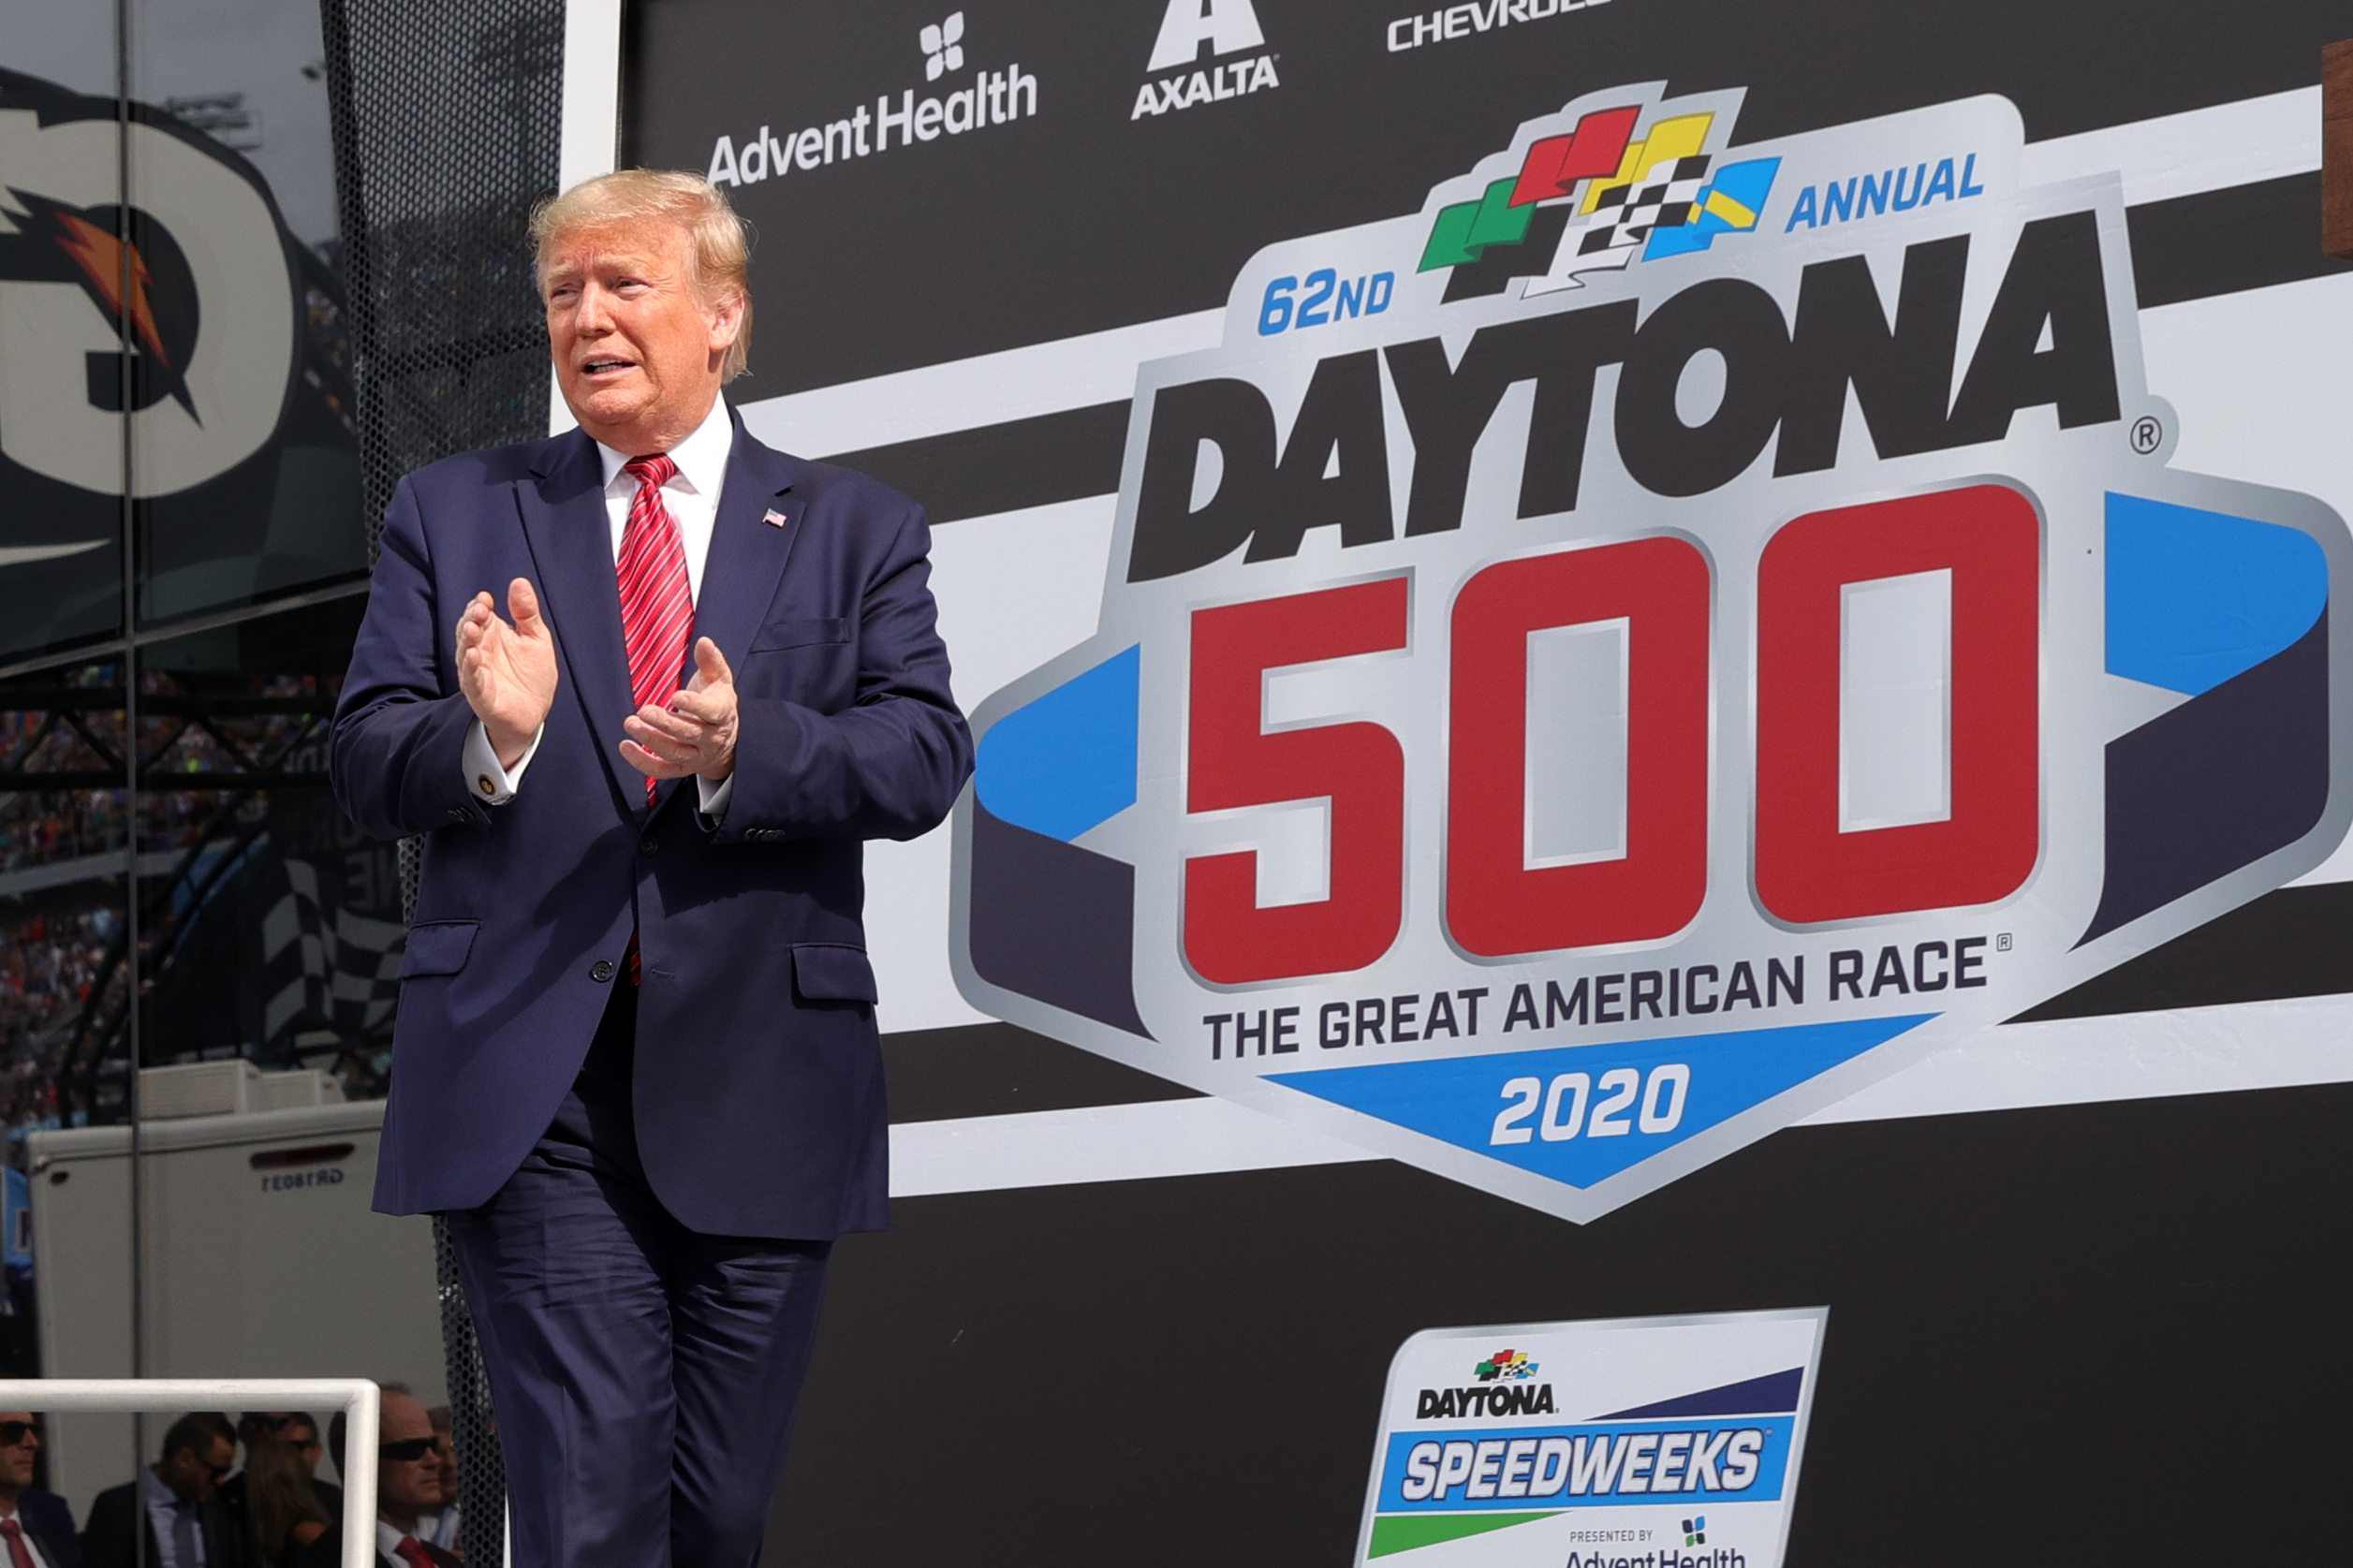 DAYTONA BEACH, FLORIDA - FEBRUARY 16: U.S. President Donald Trump speaks as First Lady Melania Trump looks on from Victory Lane prior to the NASCAR Cup Series 62nd Annual Daytona 500 at Daytona International Speedway on February 16, 2020 in Daytona Beach, Florida. (Photo by Chris Graythen/Getty Images)